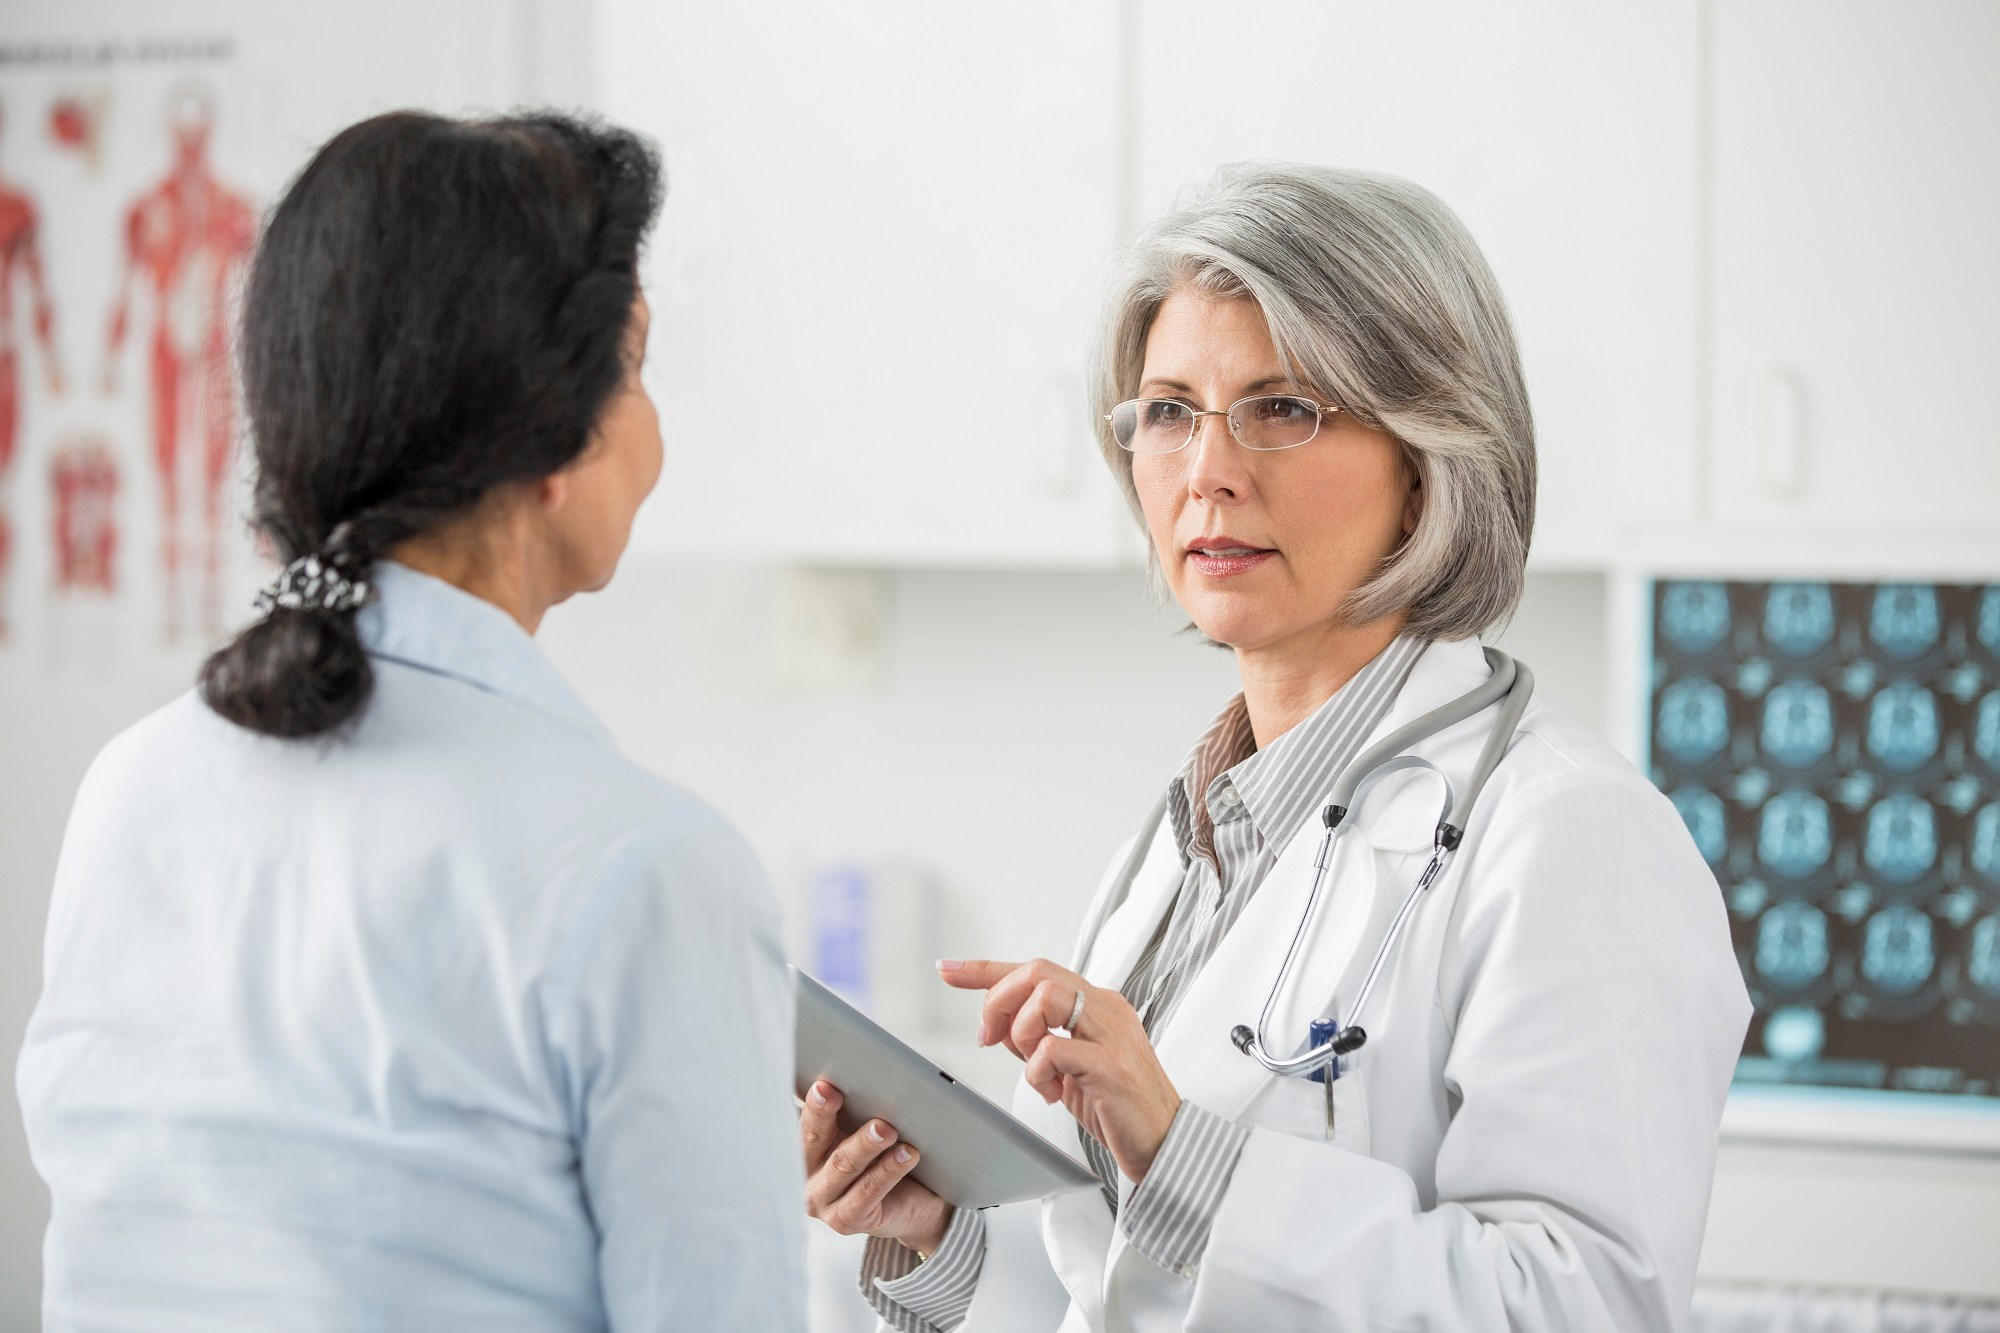 Age-Related Vaginal Symptoms Associated With Worse Quality of Life